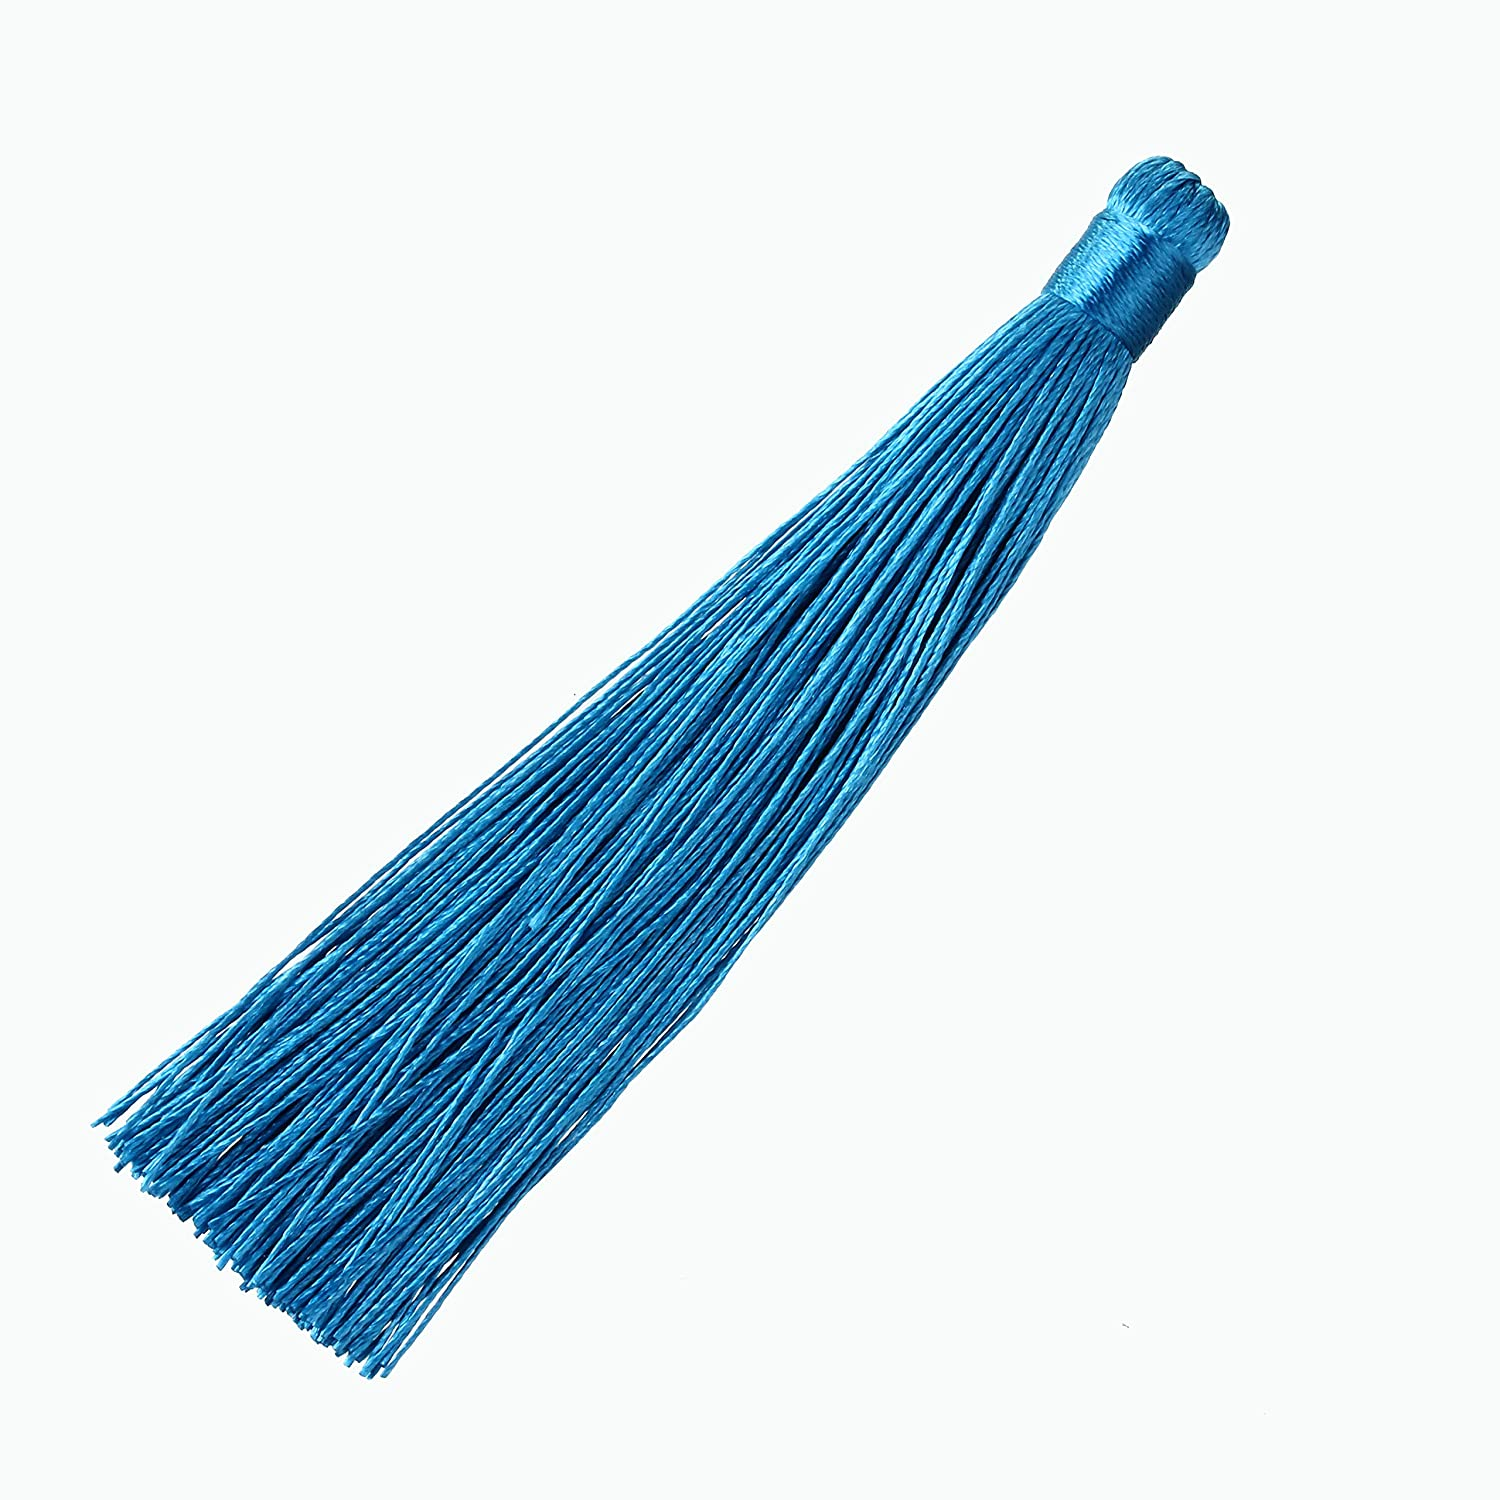 Linsoir Beads 10 pcs Navy Blue Tassels 4.7 inches Large Long Tassel for Jewelry Making F6639NB00